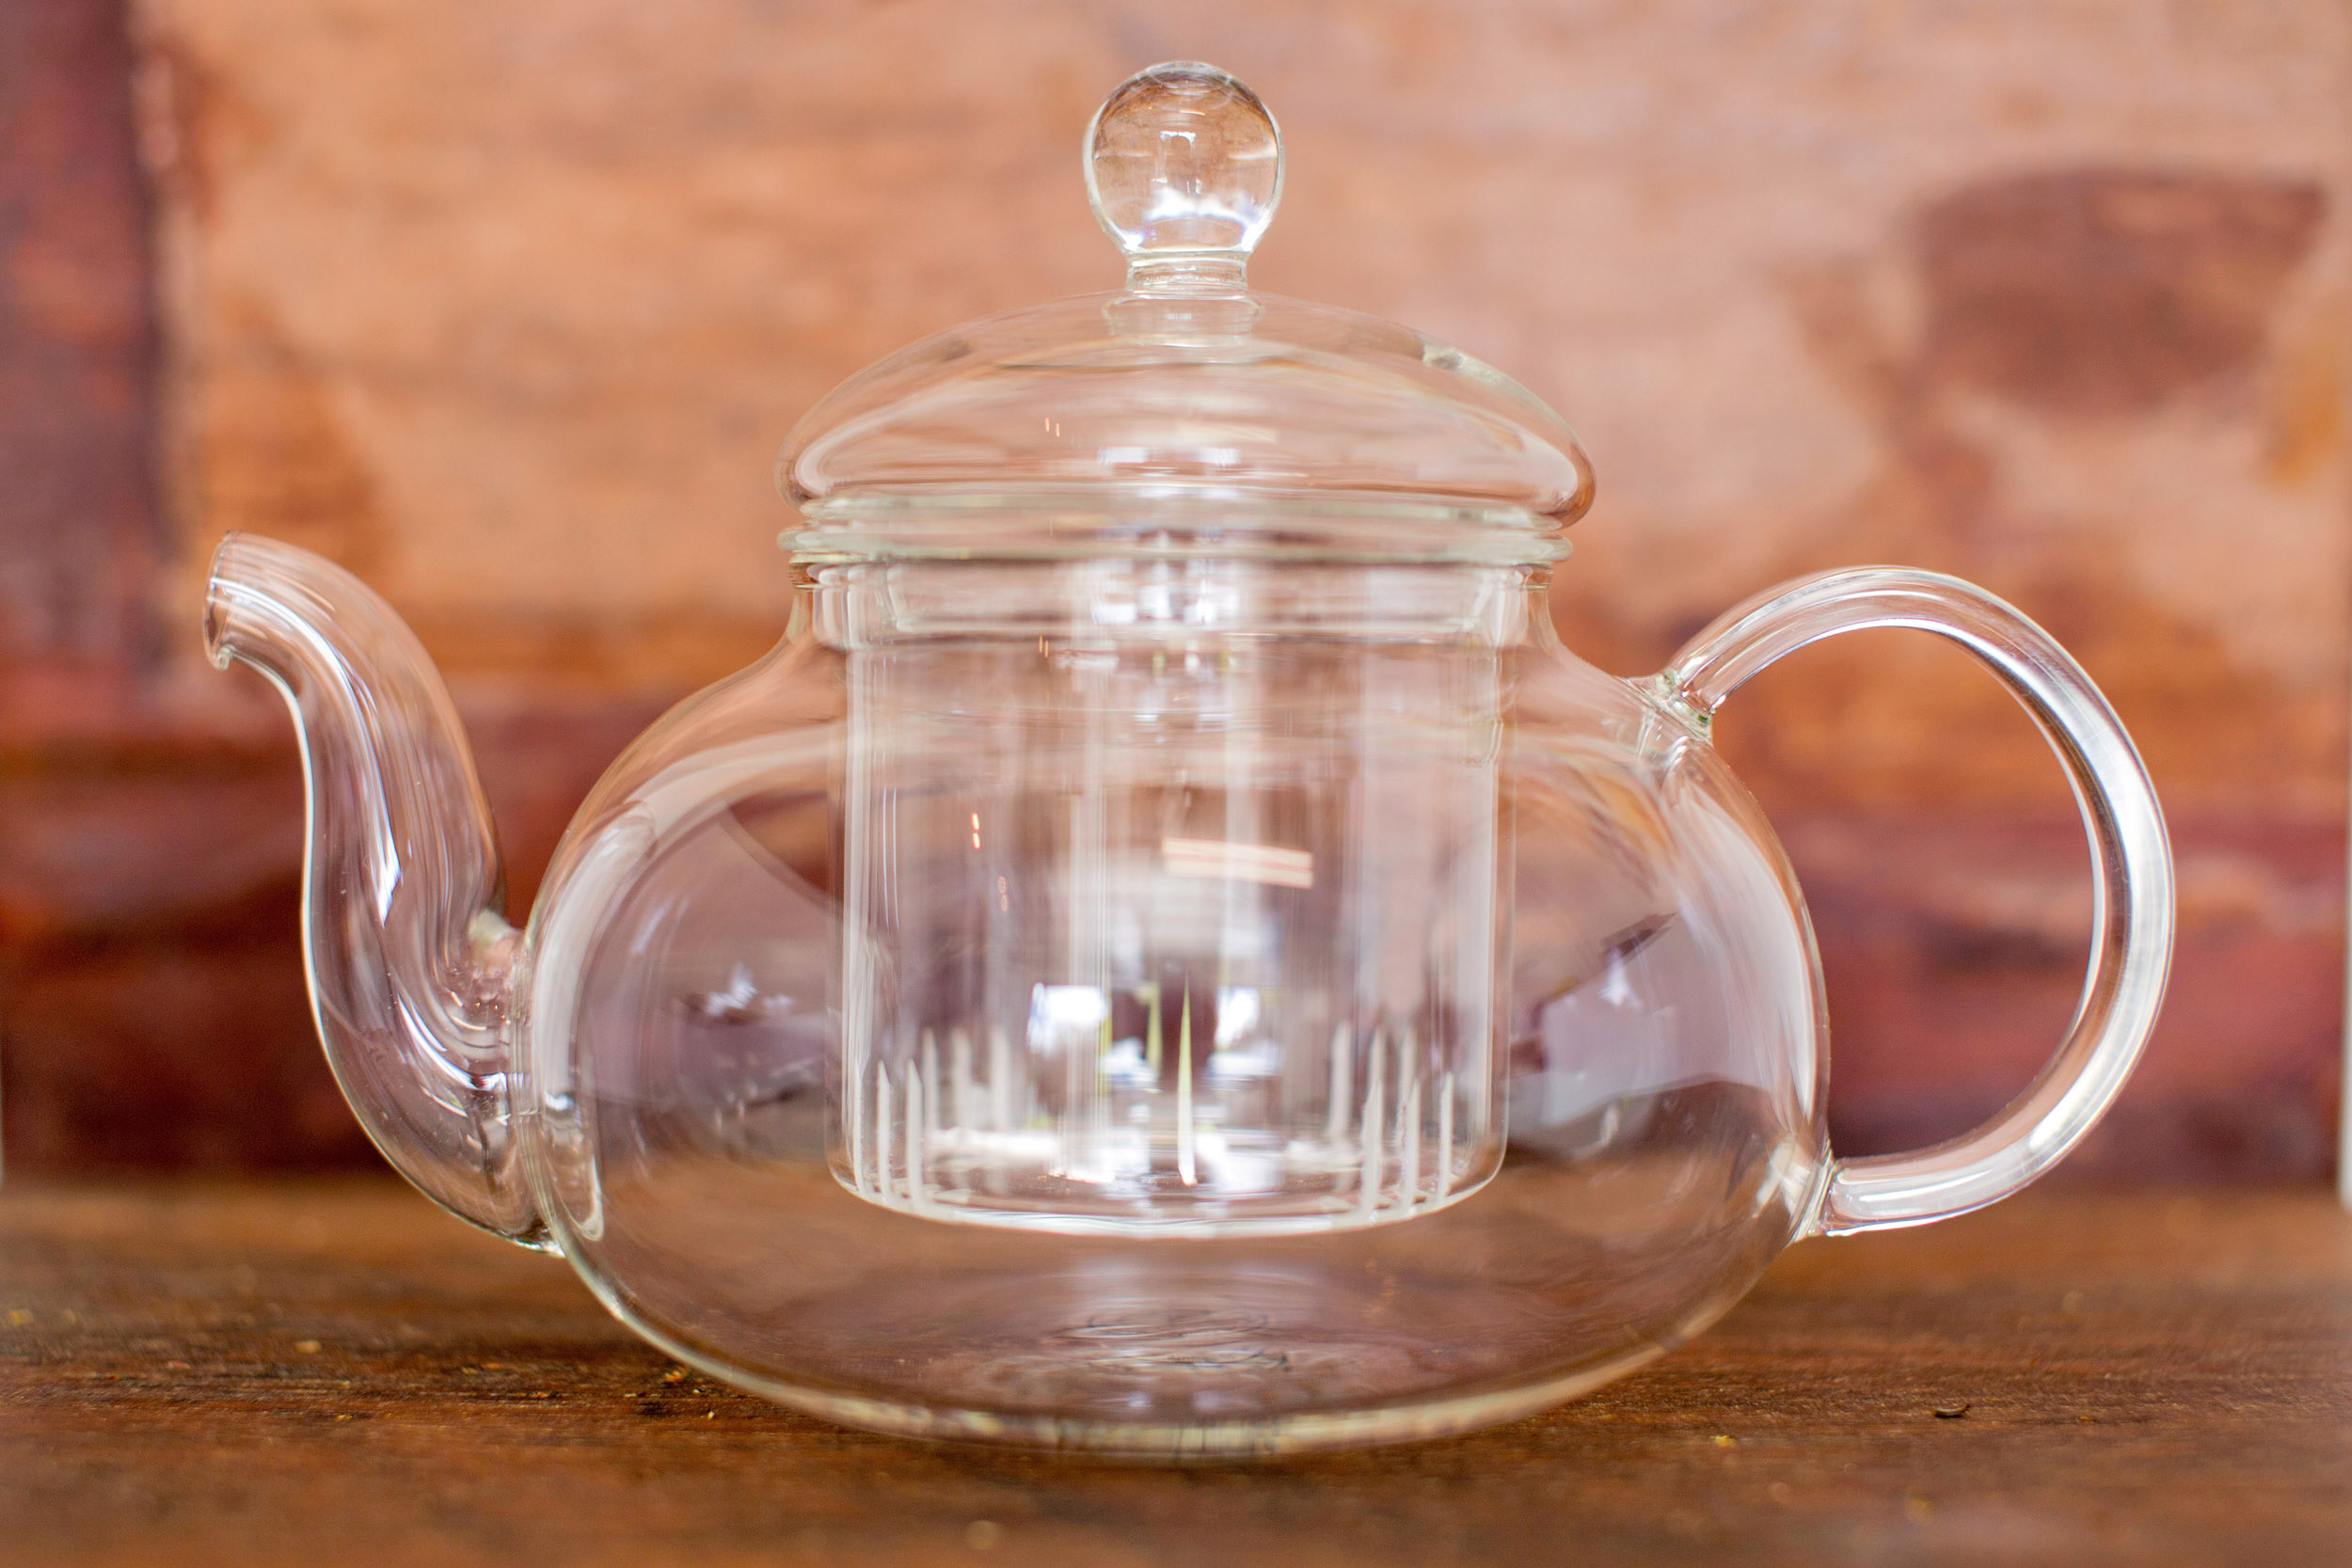 glass-teapot-product-photography.jpg